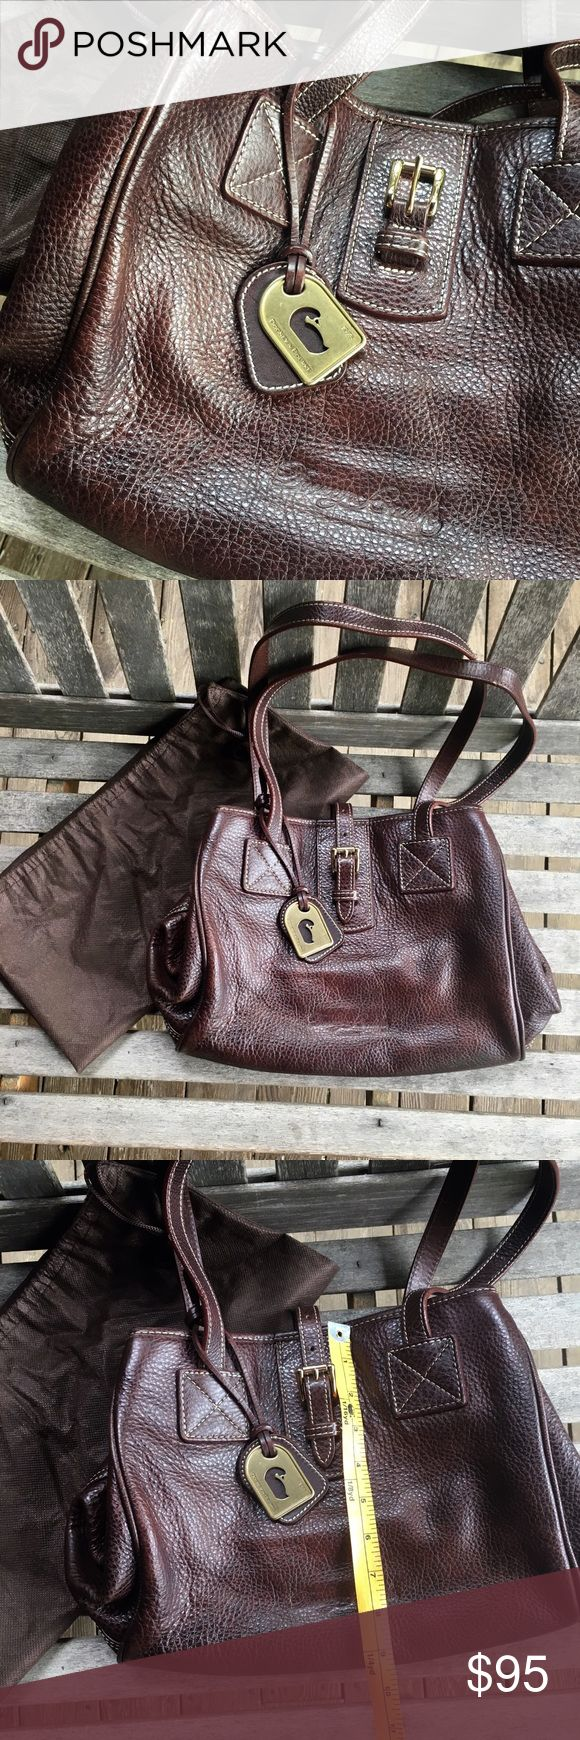 Dooney & Bourke cowhide medium tote Dooney & Bourke cowhide medium tote with dust bag. Buckle strap, textured brown leather with detailed contrast top stitching. Gently used for one season - some minor scuffing along seams (shown in last photo). Dooney & Bourke Bags Totes